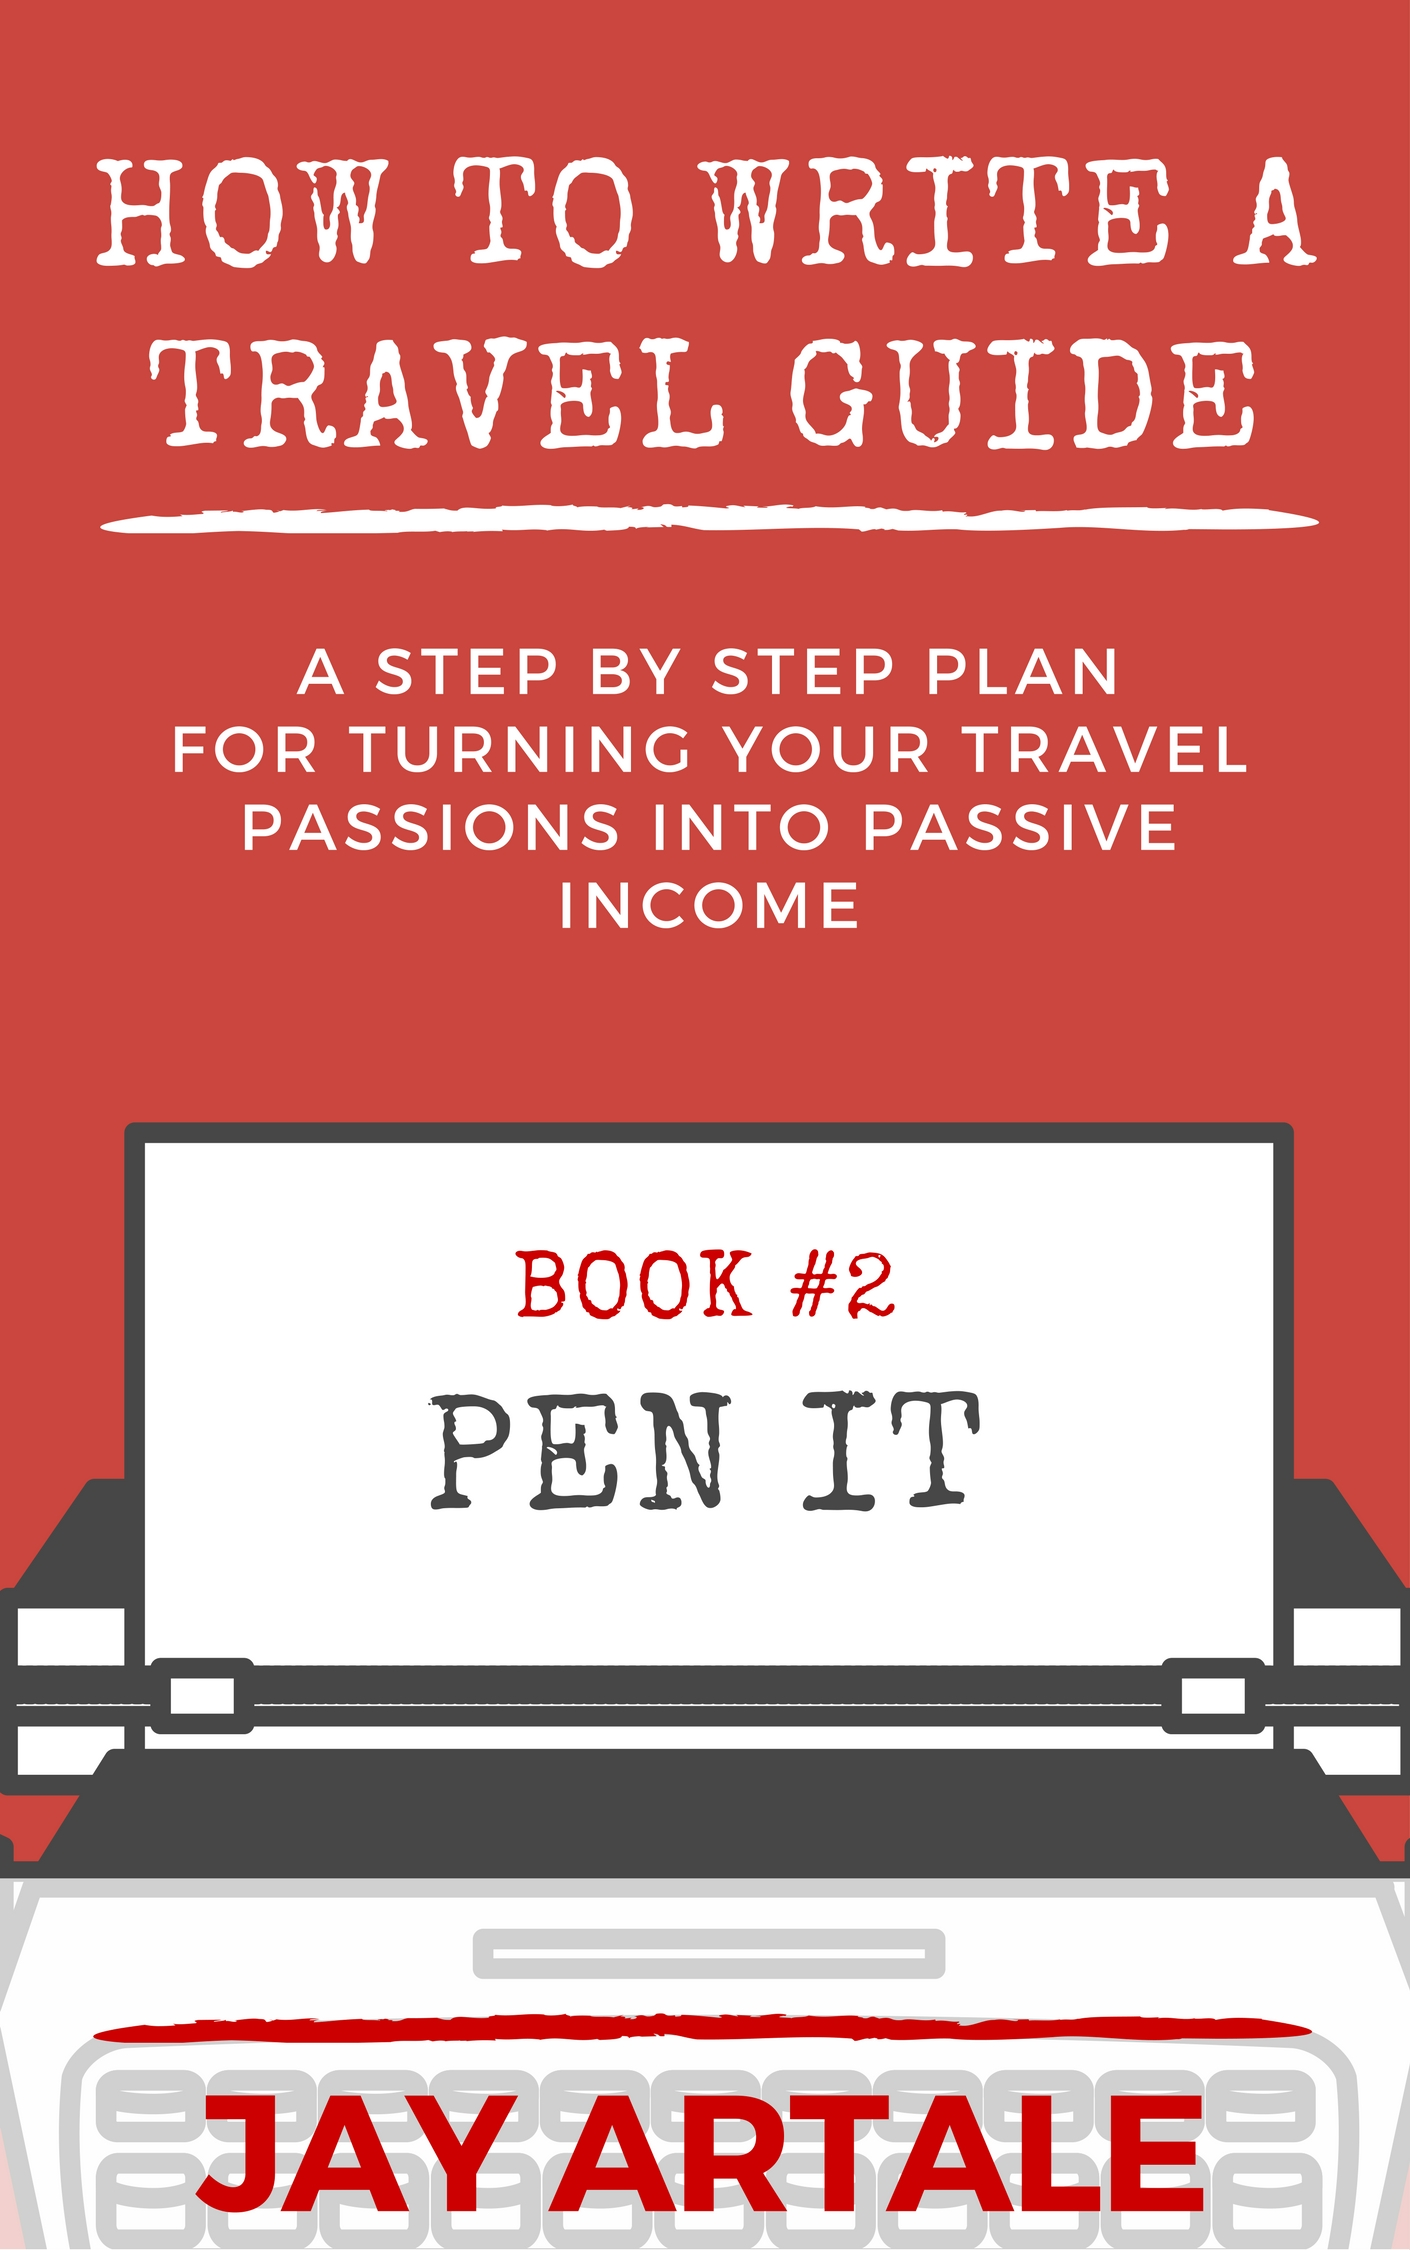 How to Write A Travel Guide Series cover Jay Artale